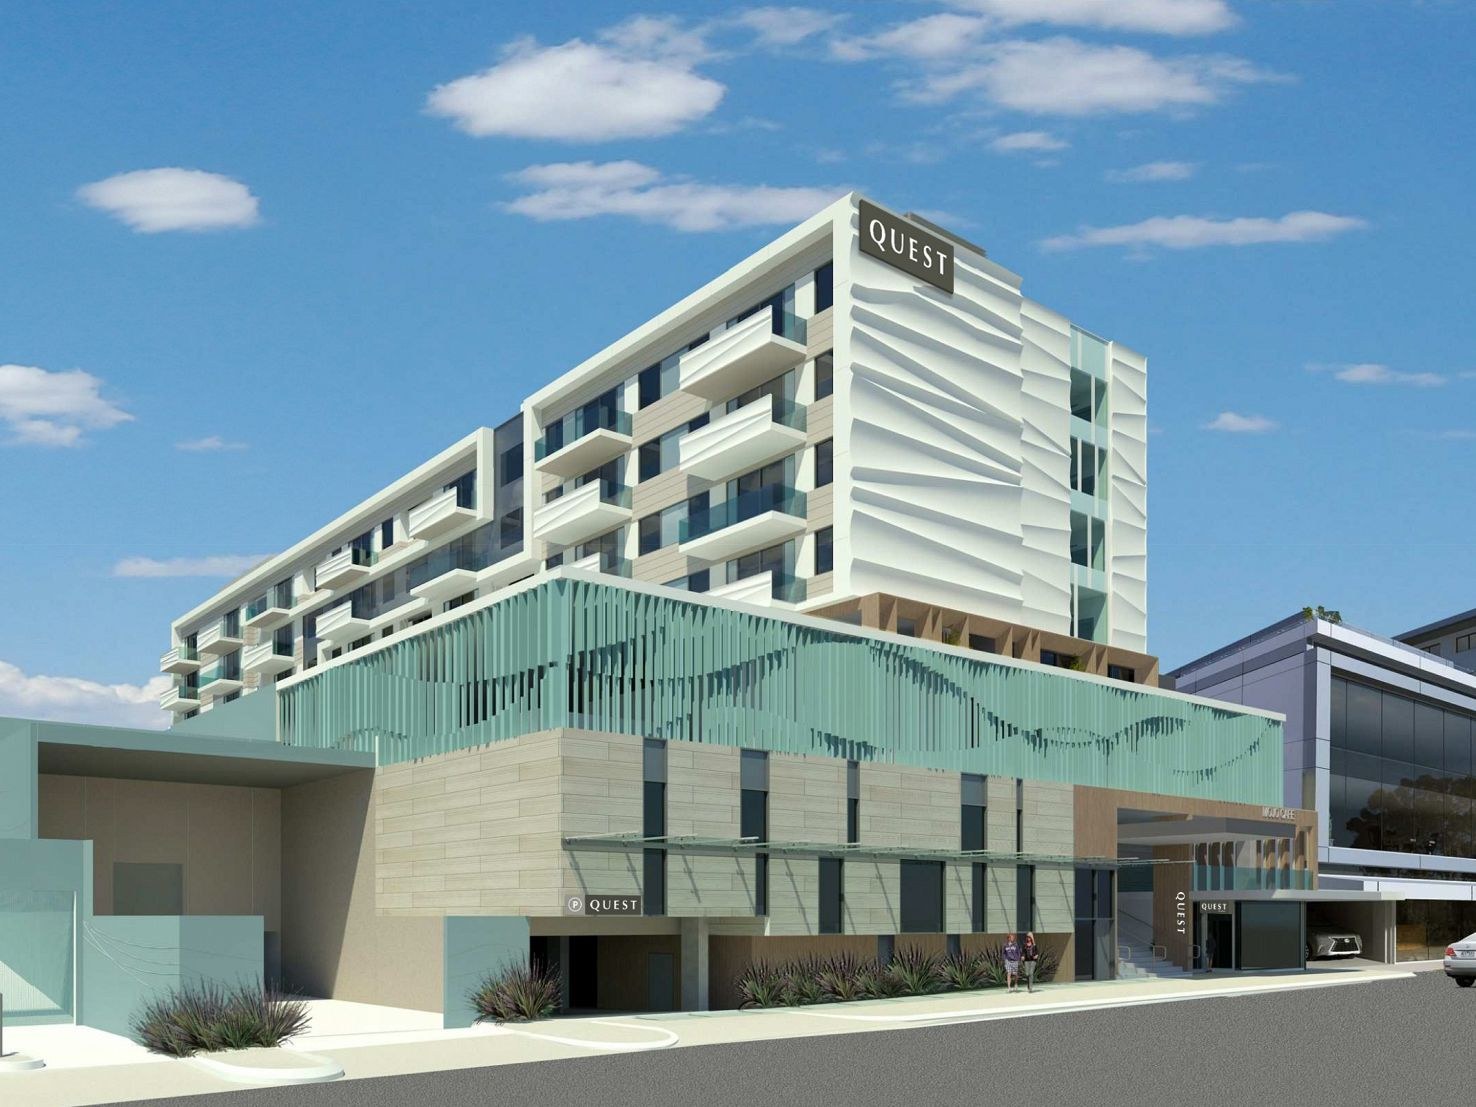 Leasehold of a Quest Apartment Hotel Development in Perth